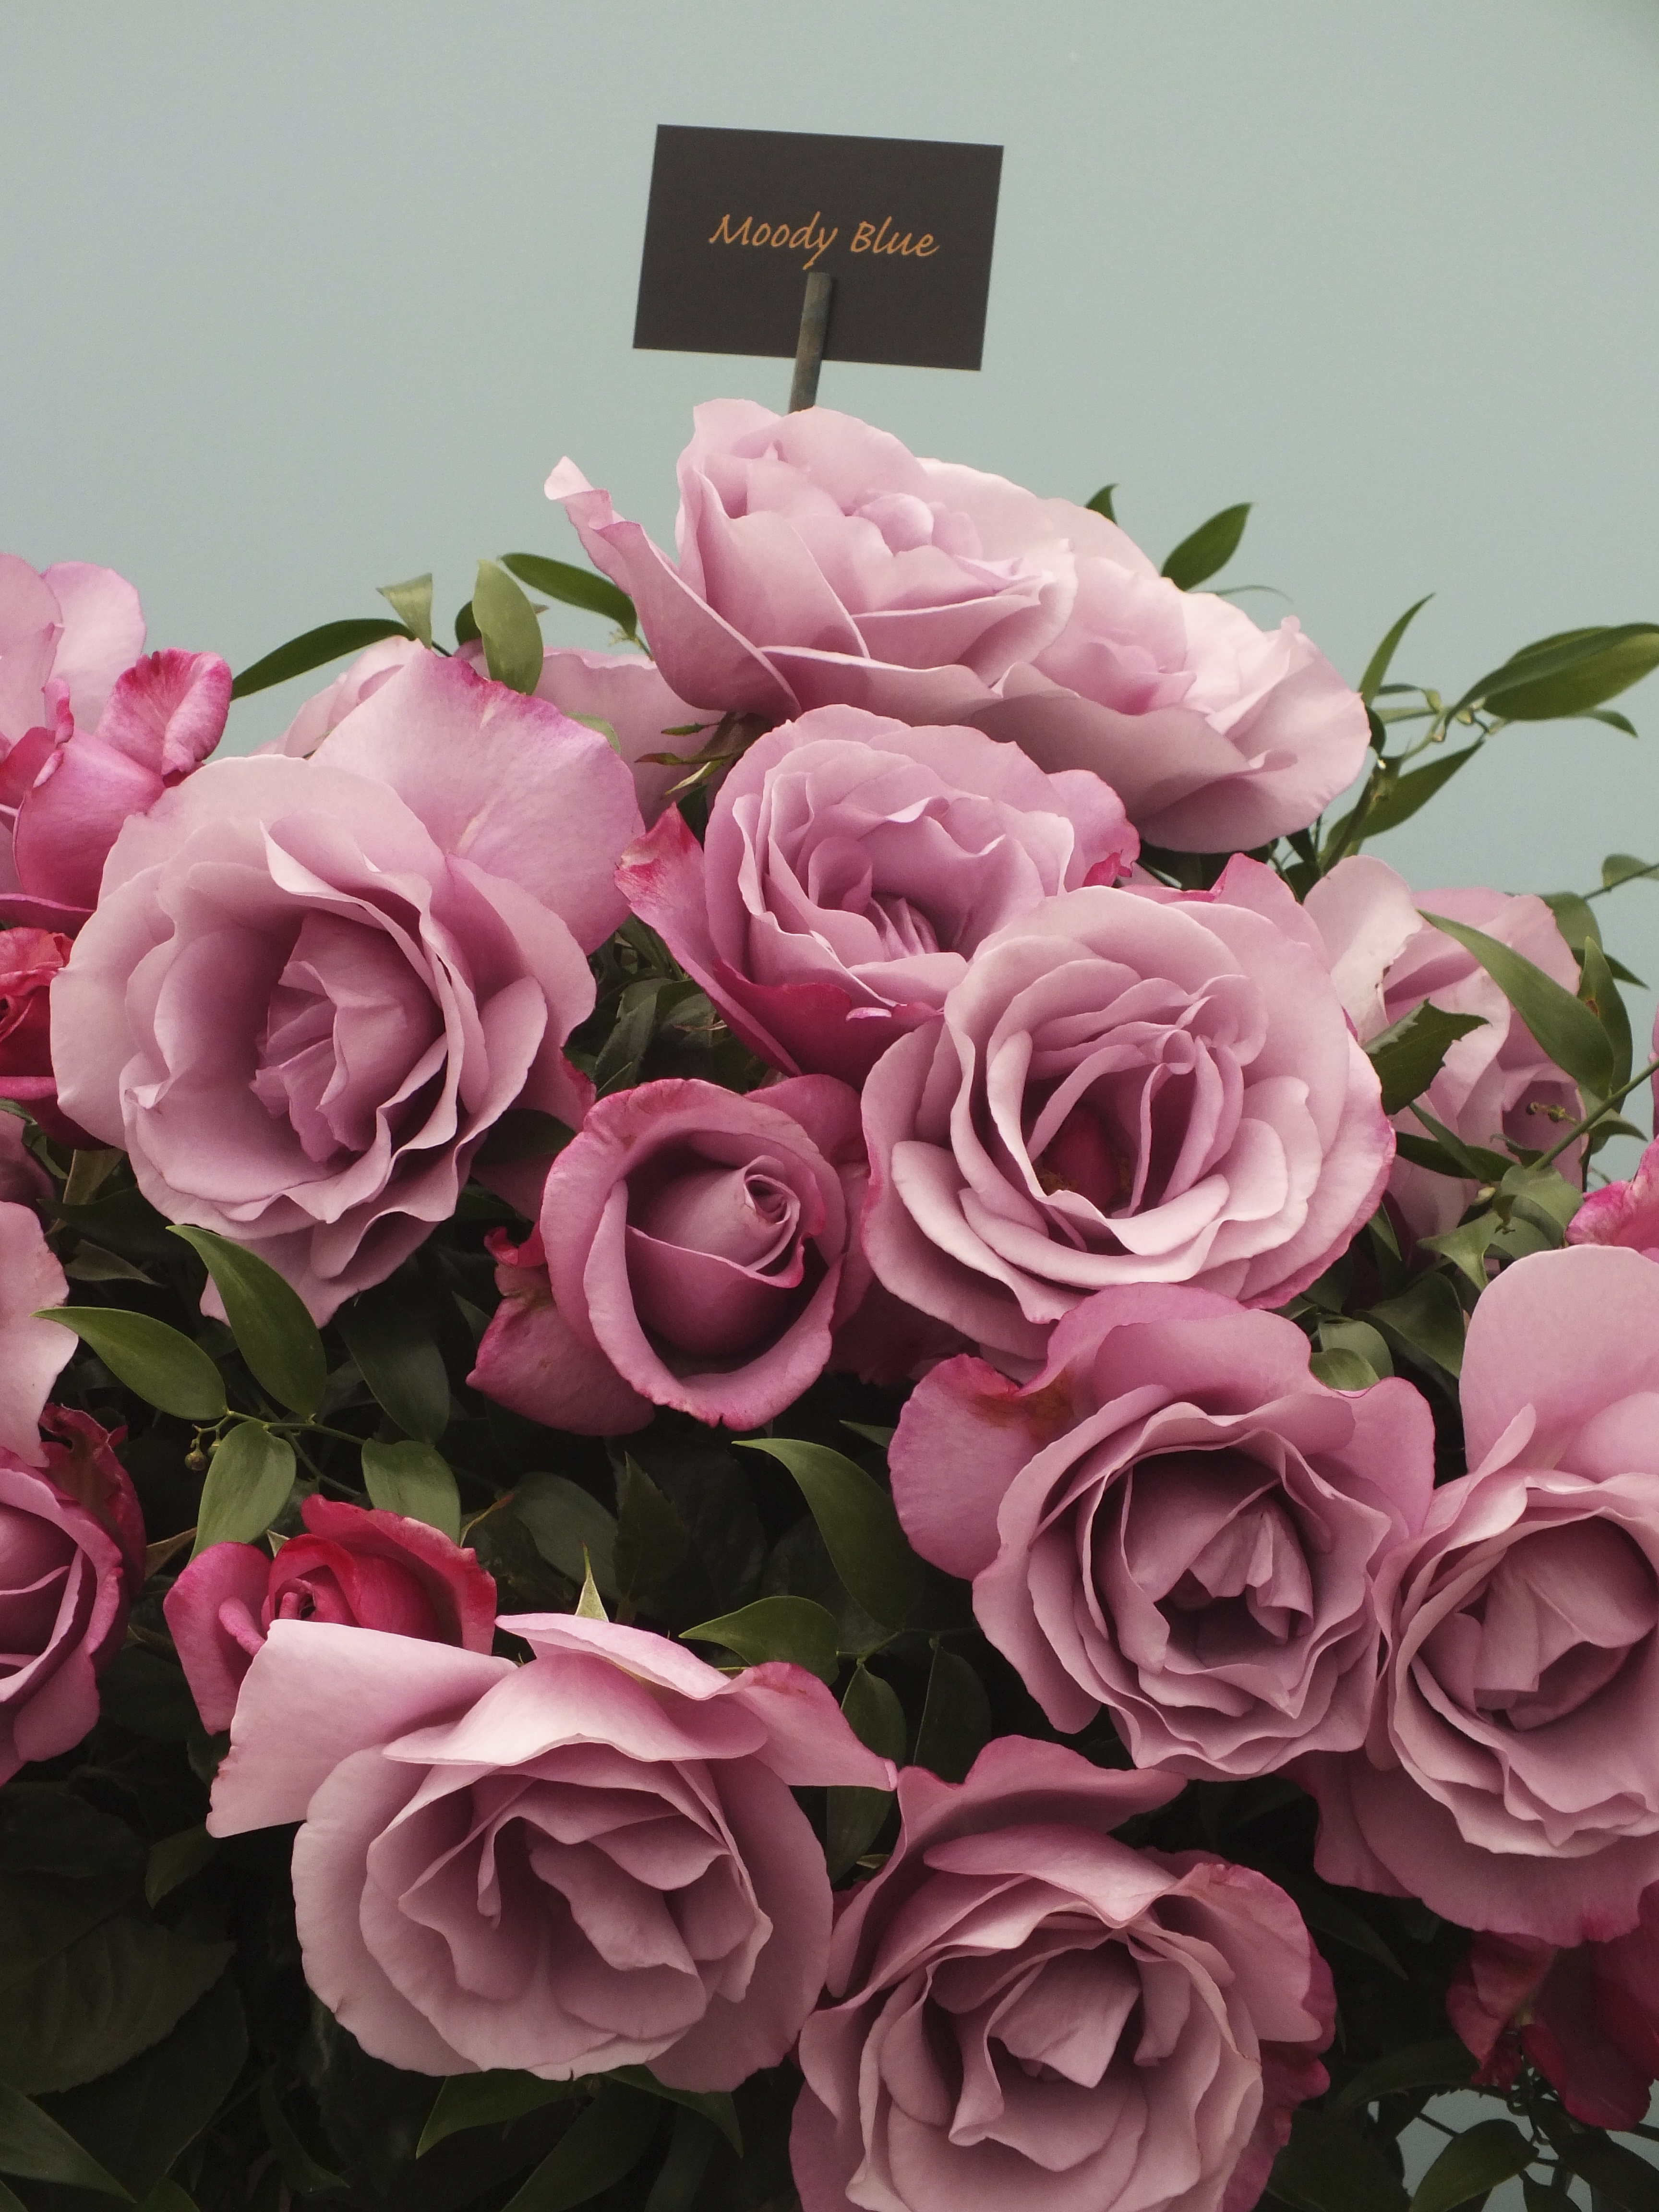 The Rose Marquee at RHS Hampton Court Flower Show | The